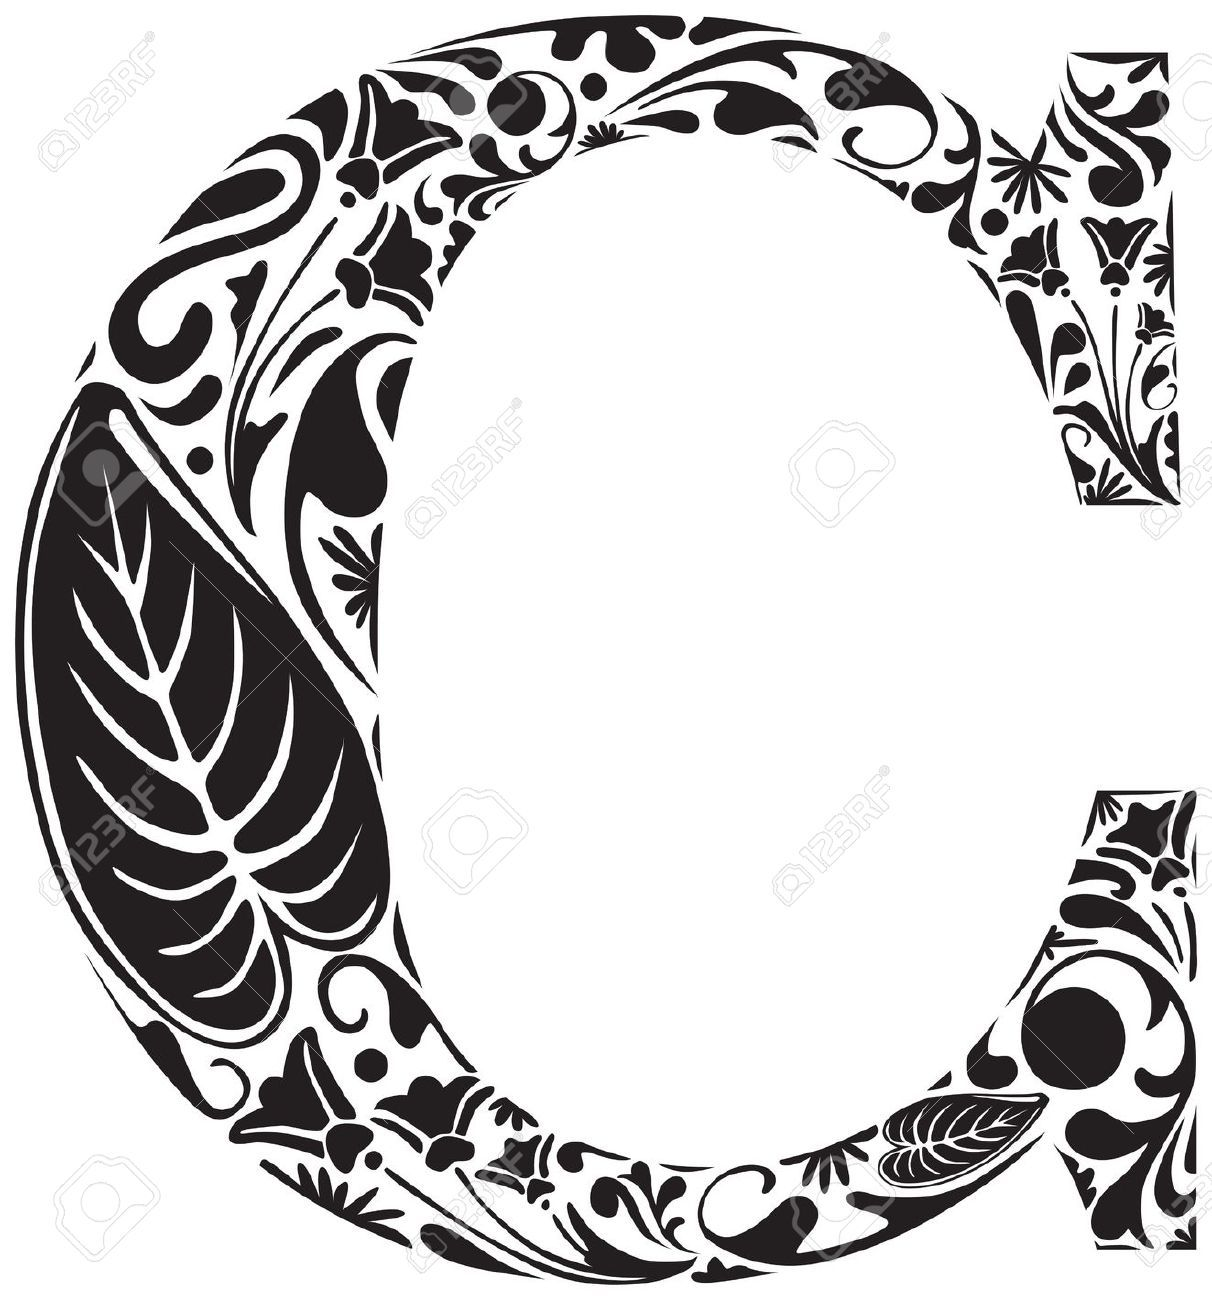 18386777 Floral Initial Capital Letter C Stock Vector.